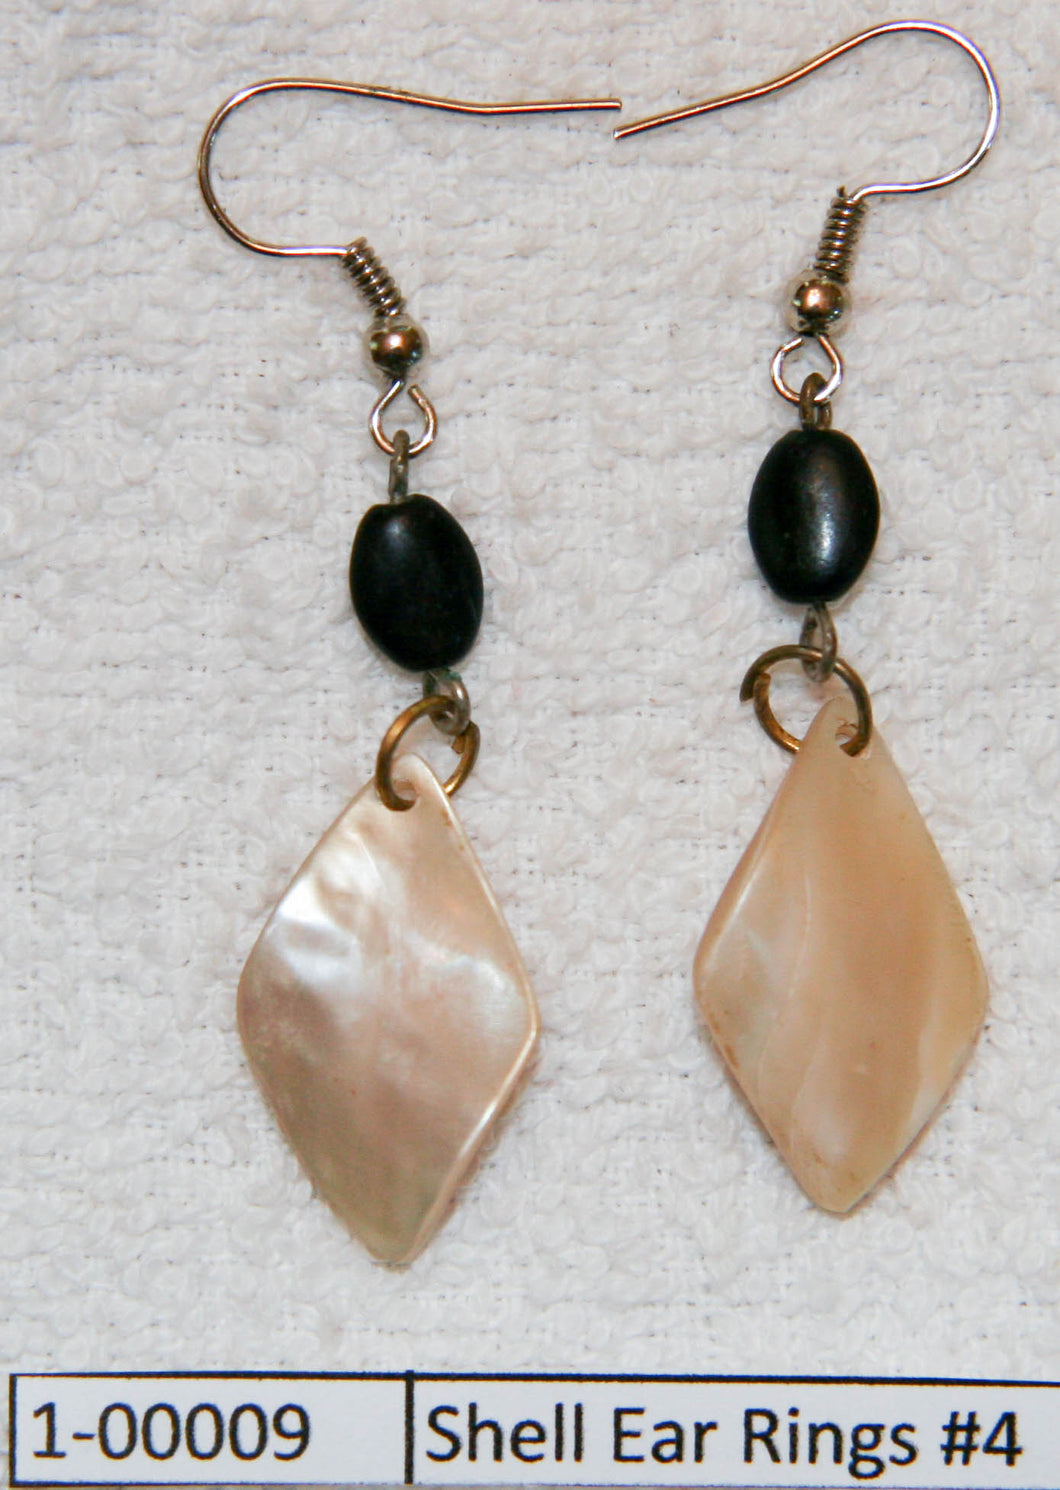 Shell Ear Rings #4